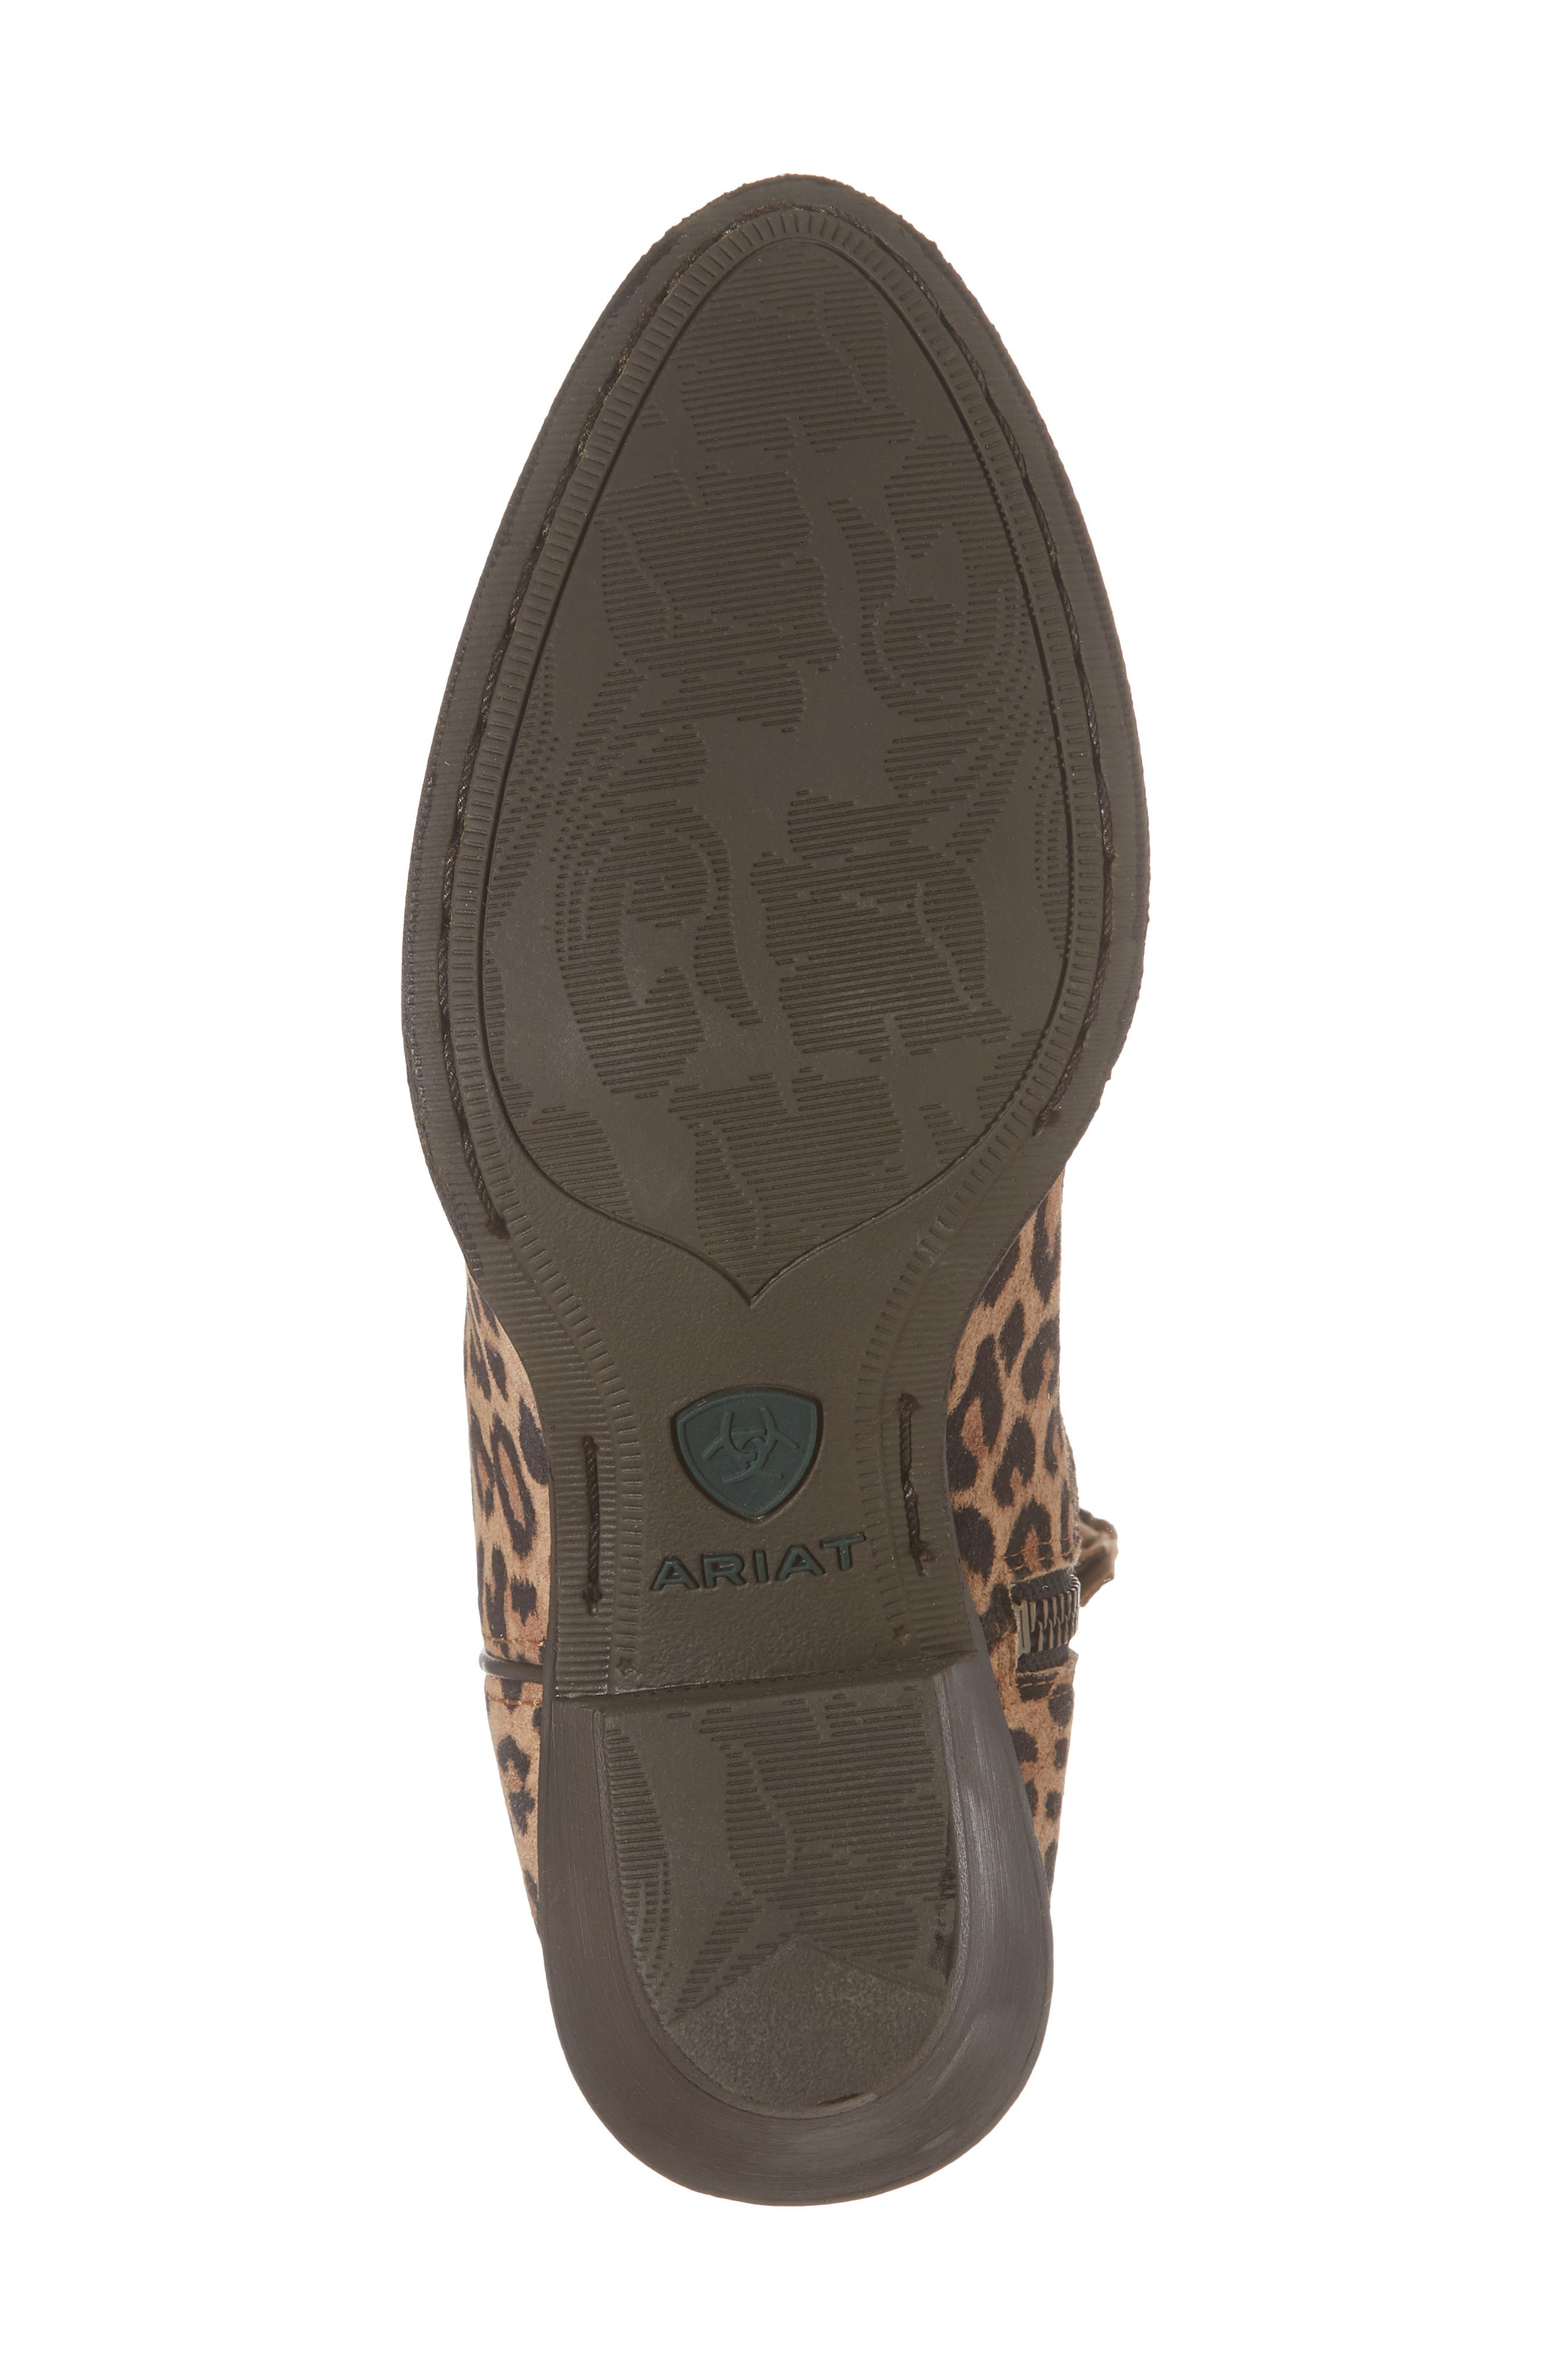 Darlin Short Western Boot,                             Alternate thumbnail 6, color,                             LEOPARD PRINT LEATHER